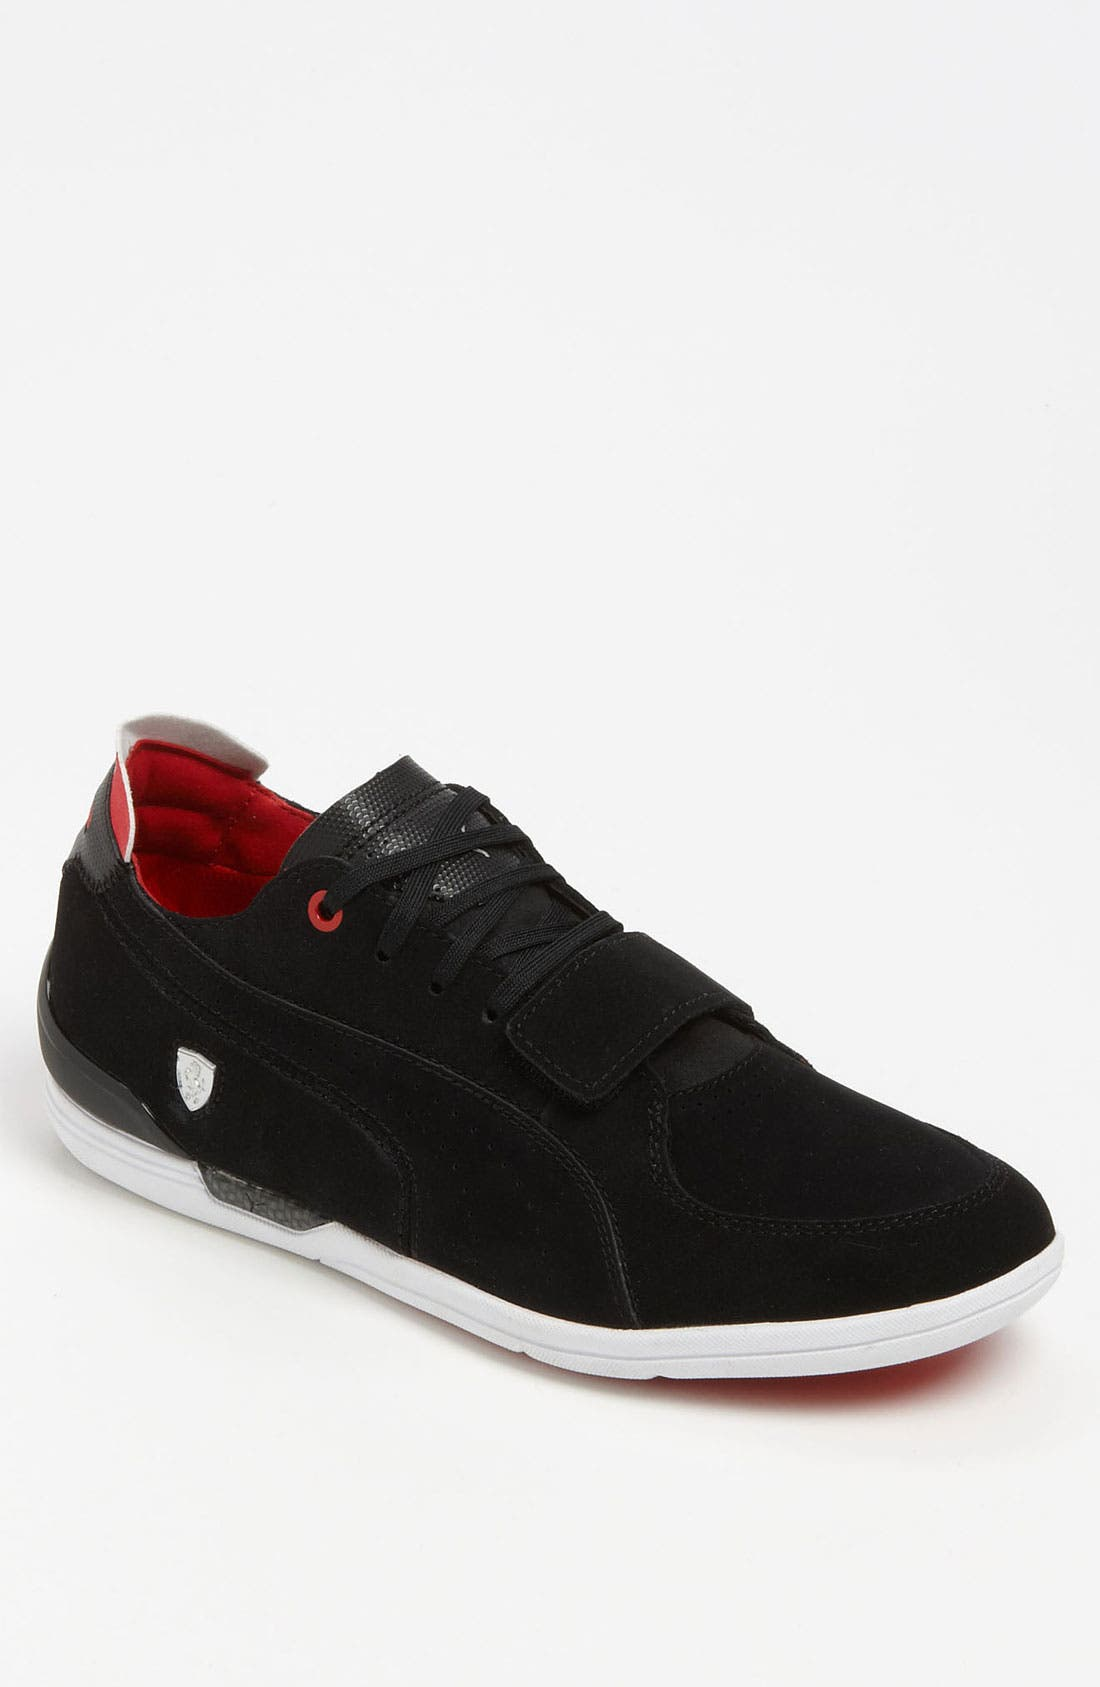 Main Image - PUMA 'Driving Power 2 Low' Sneaker (Men)